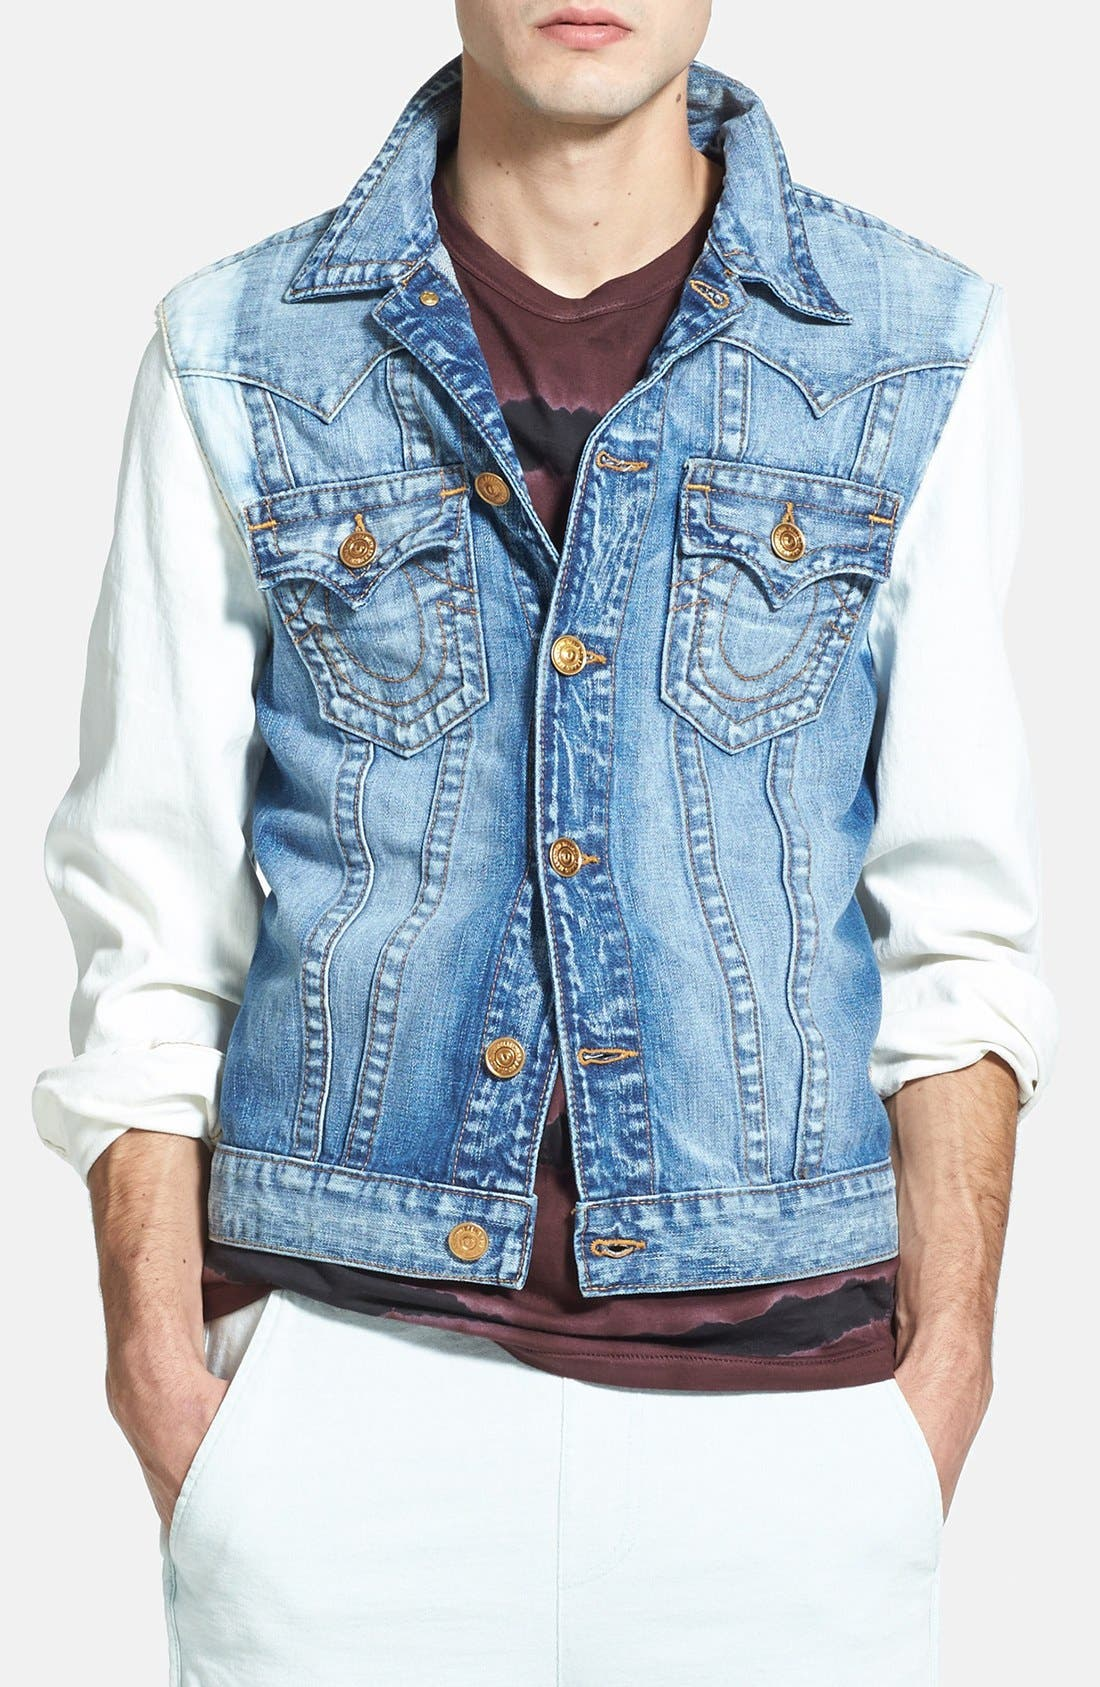 Alternate Image 1 Selected - True Religion Brand Jeans 'Jimmy' Trim Fit Washed Denim Jacket